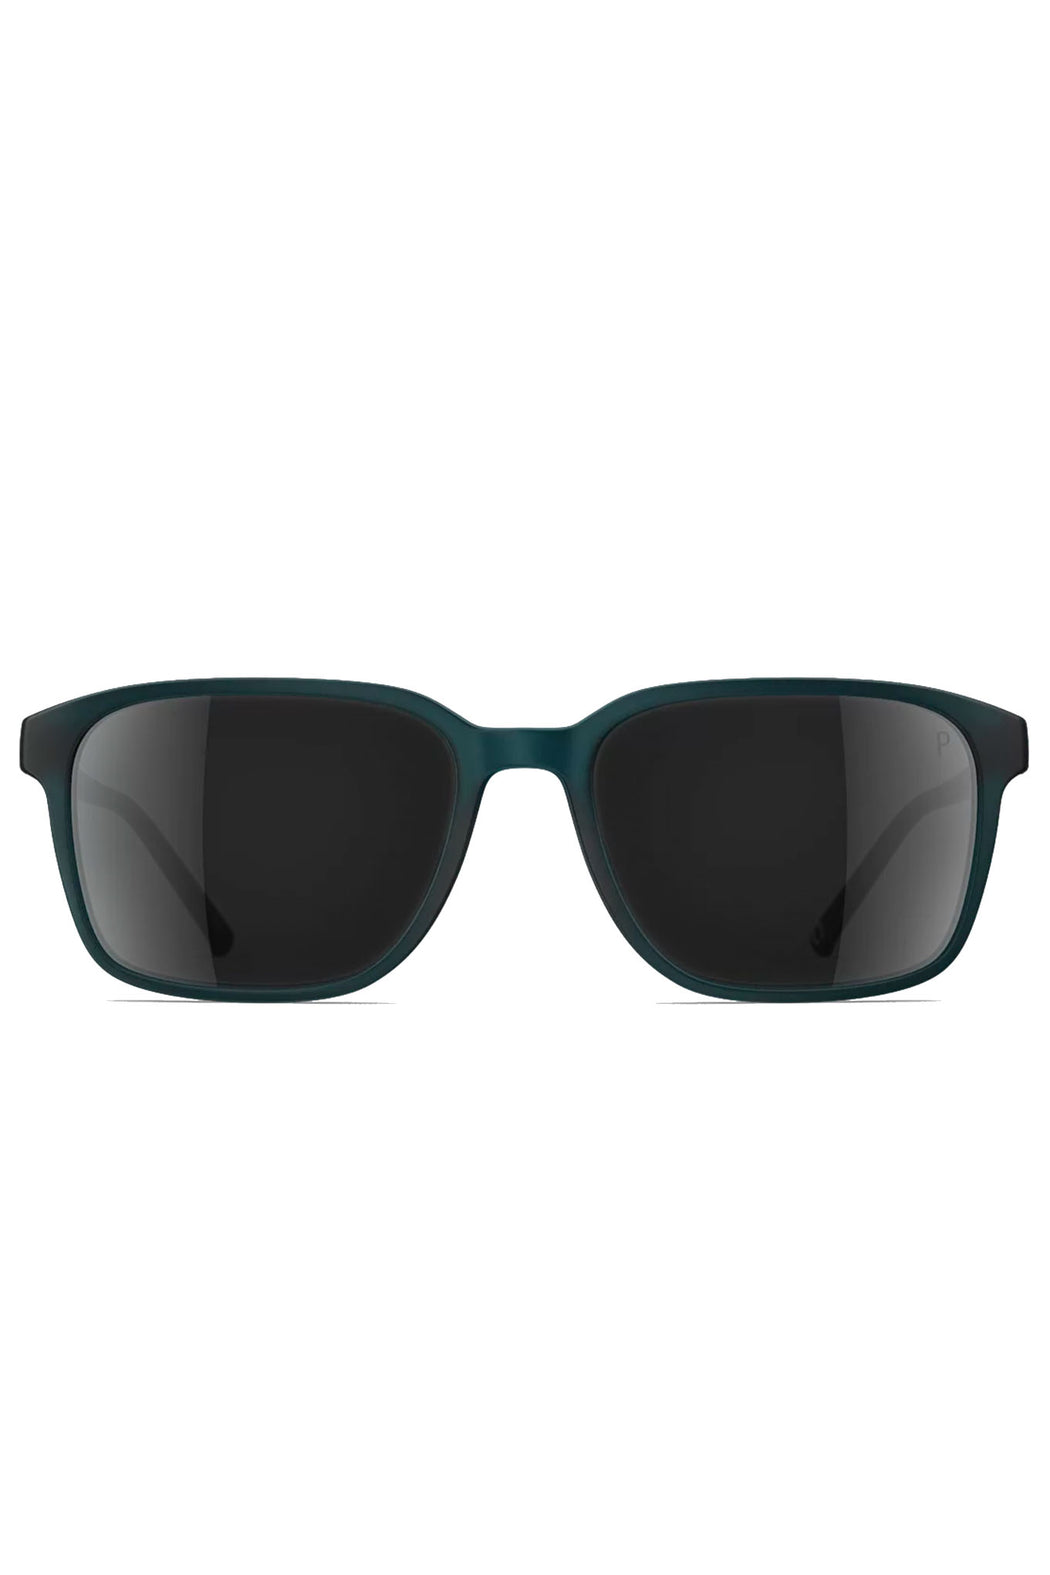 BOB T642 dark teal matte Fb.5100 polarized